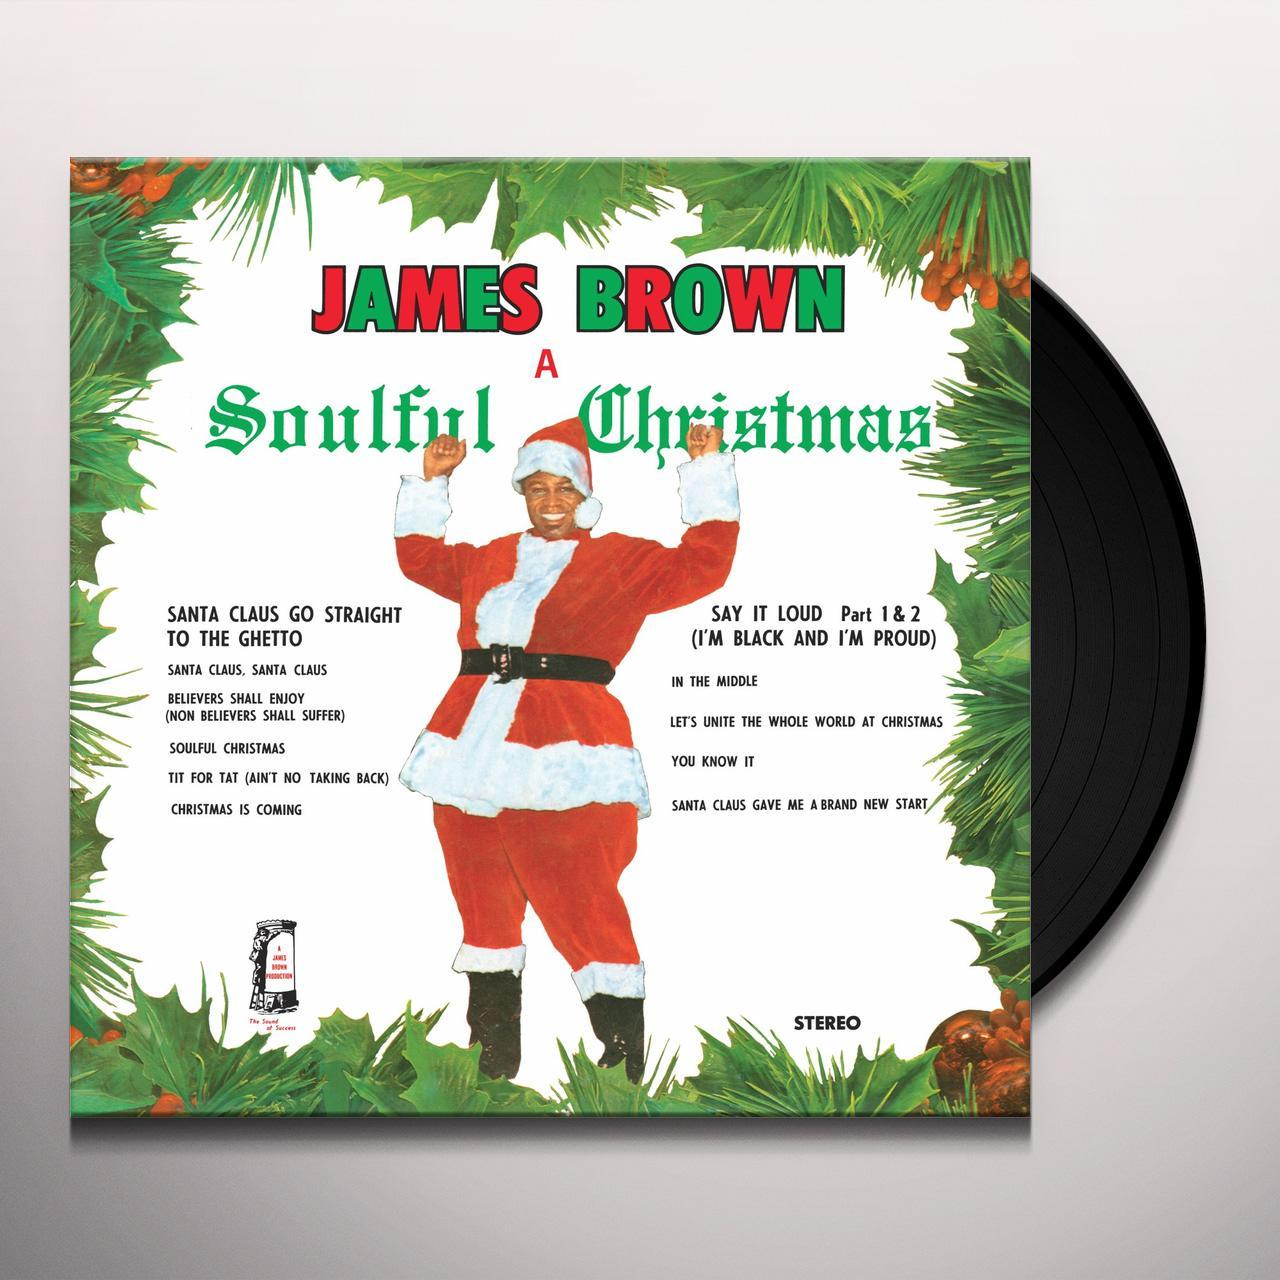 james brown soulful christmas vinyl record tap to expand